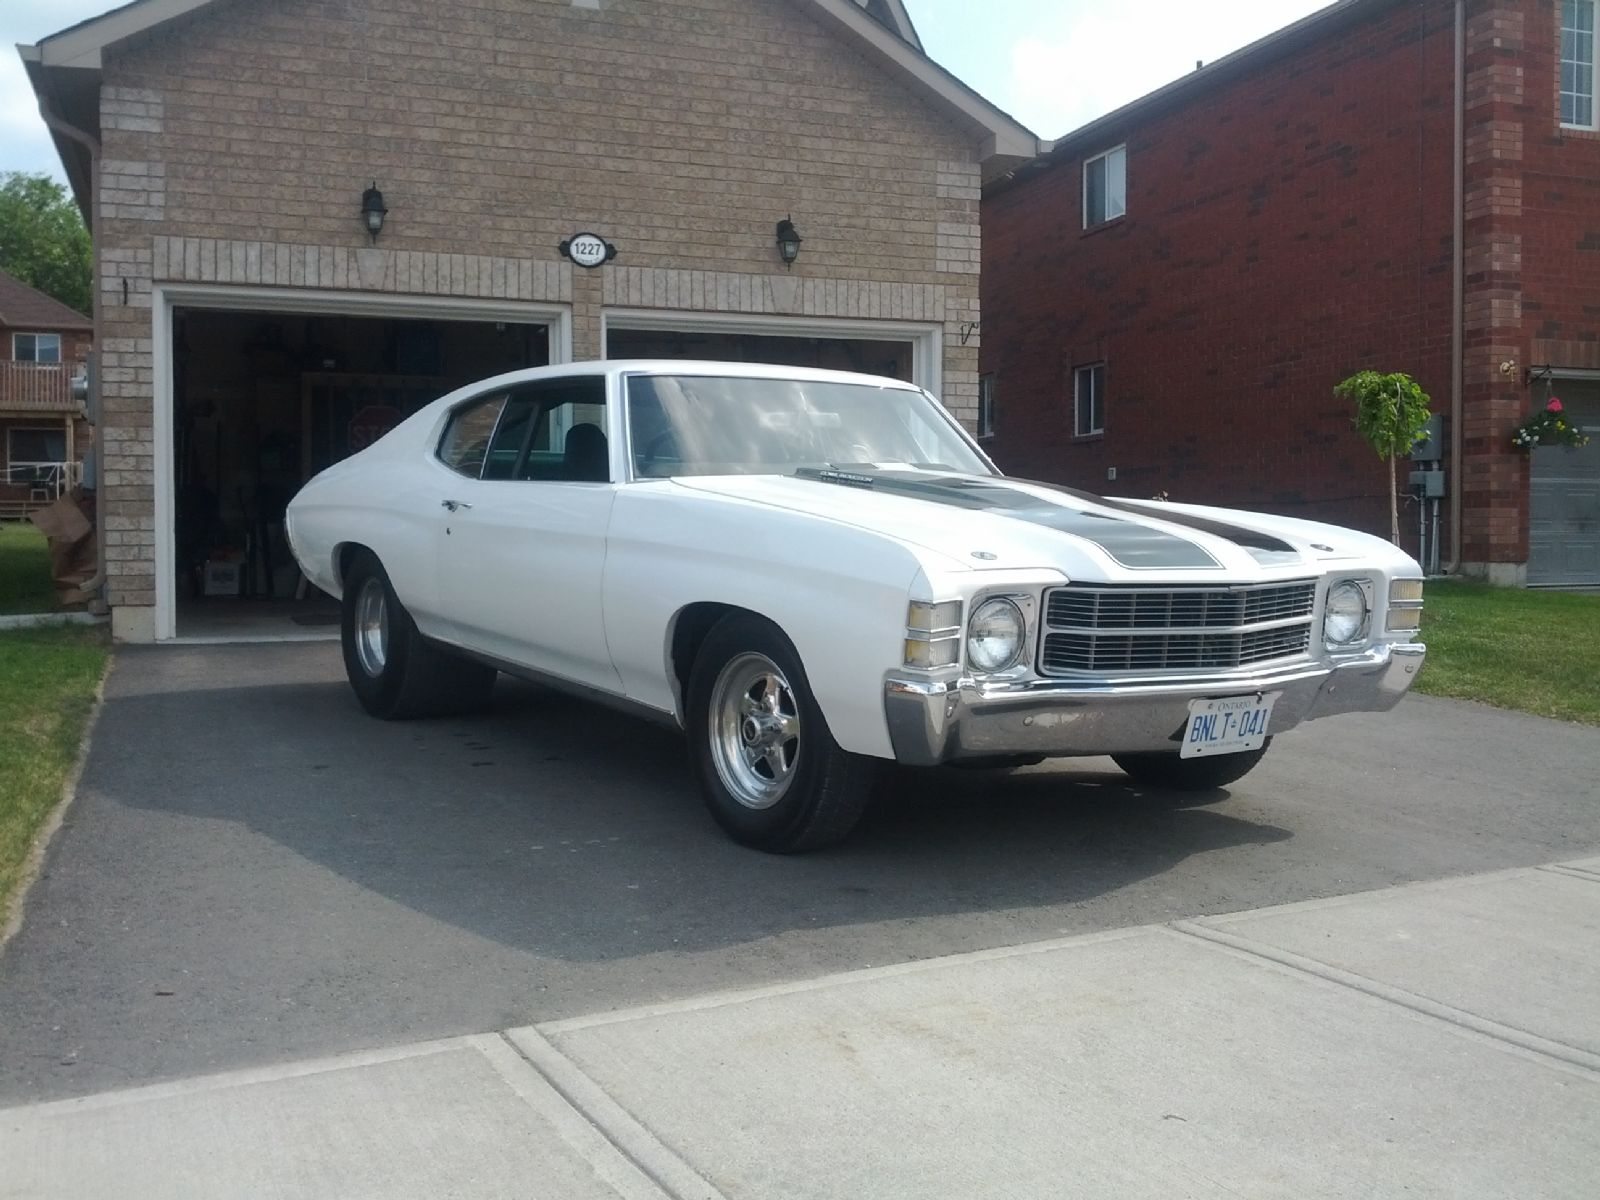 1971 Chevrolet Chevelle Malibu For Sale | Barrie Ontario